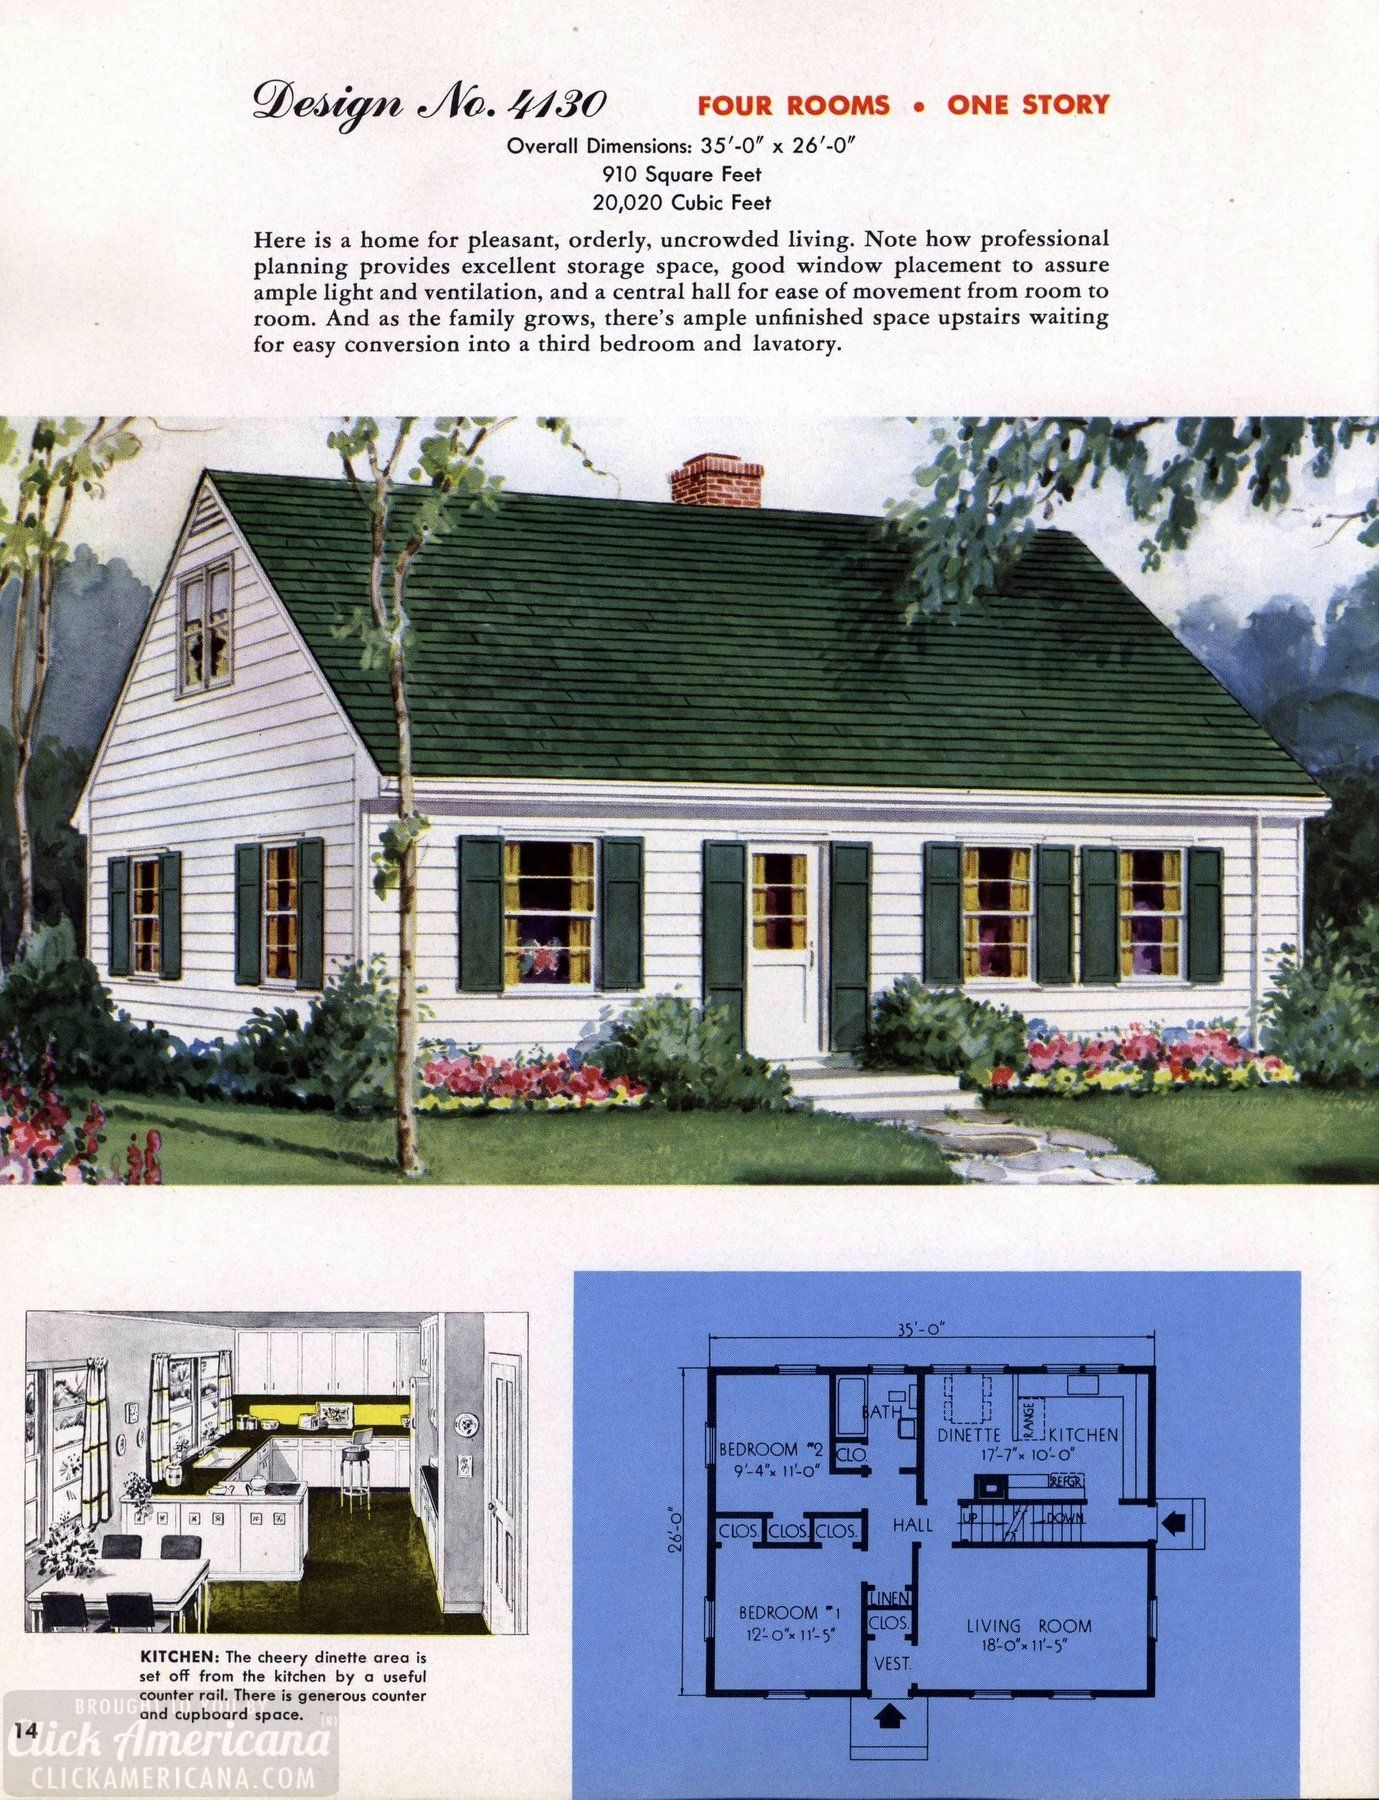 Classic House Plans From 1955 50s Suburban Home Designs At Click Americana 15 Classic House Home Design Floor Plans Vintage House